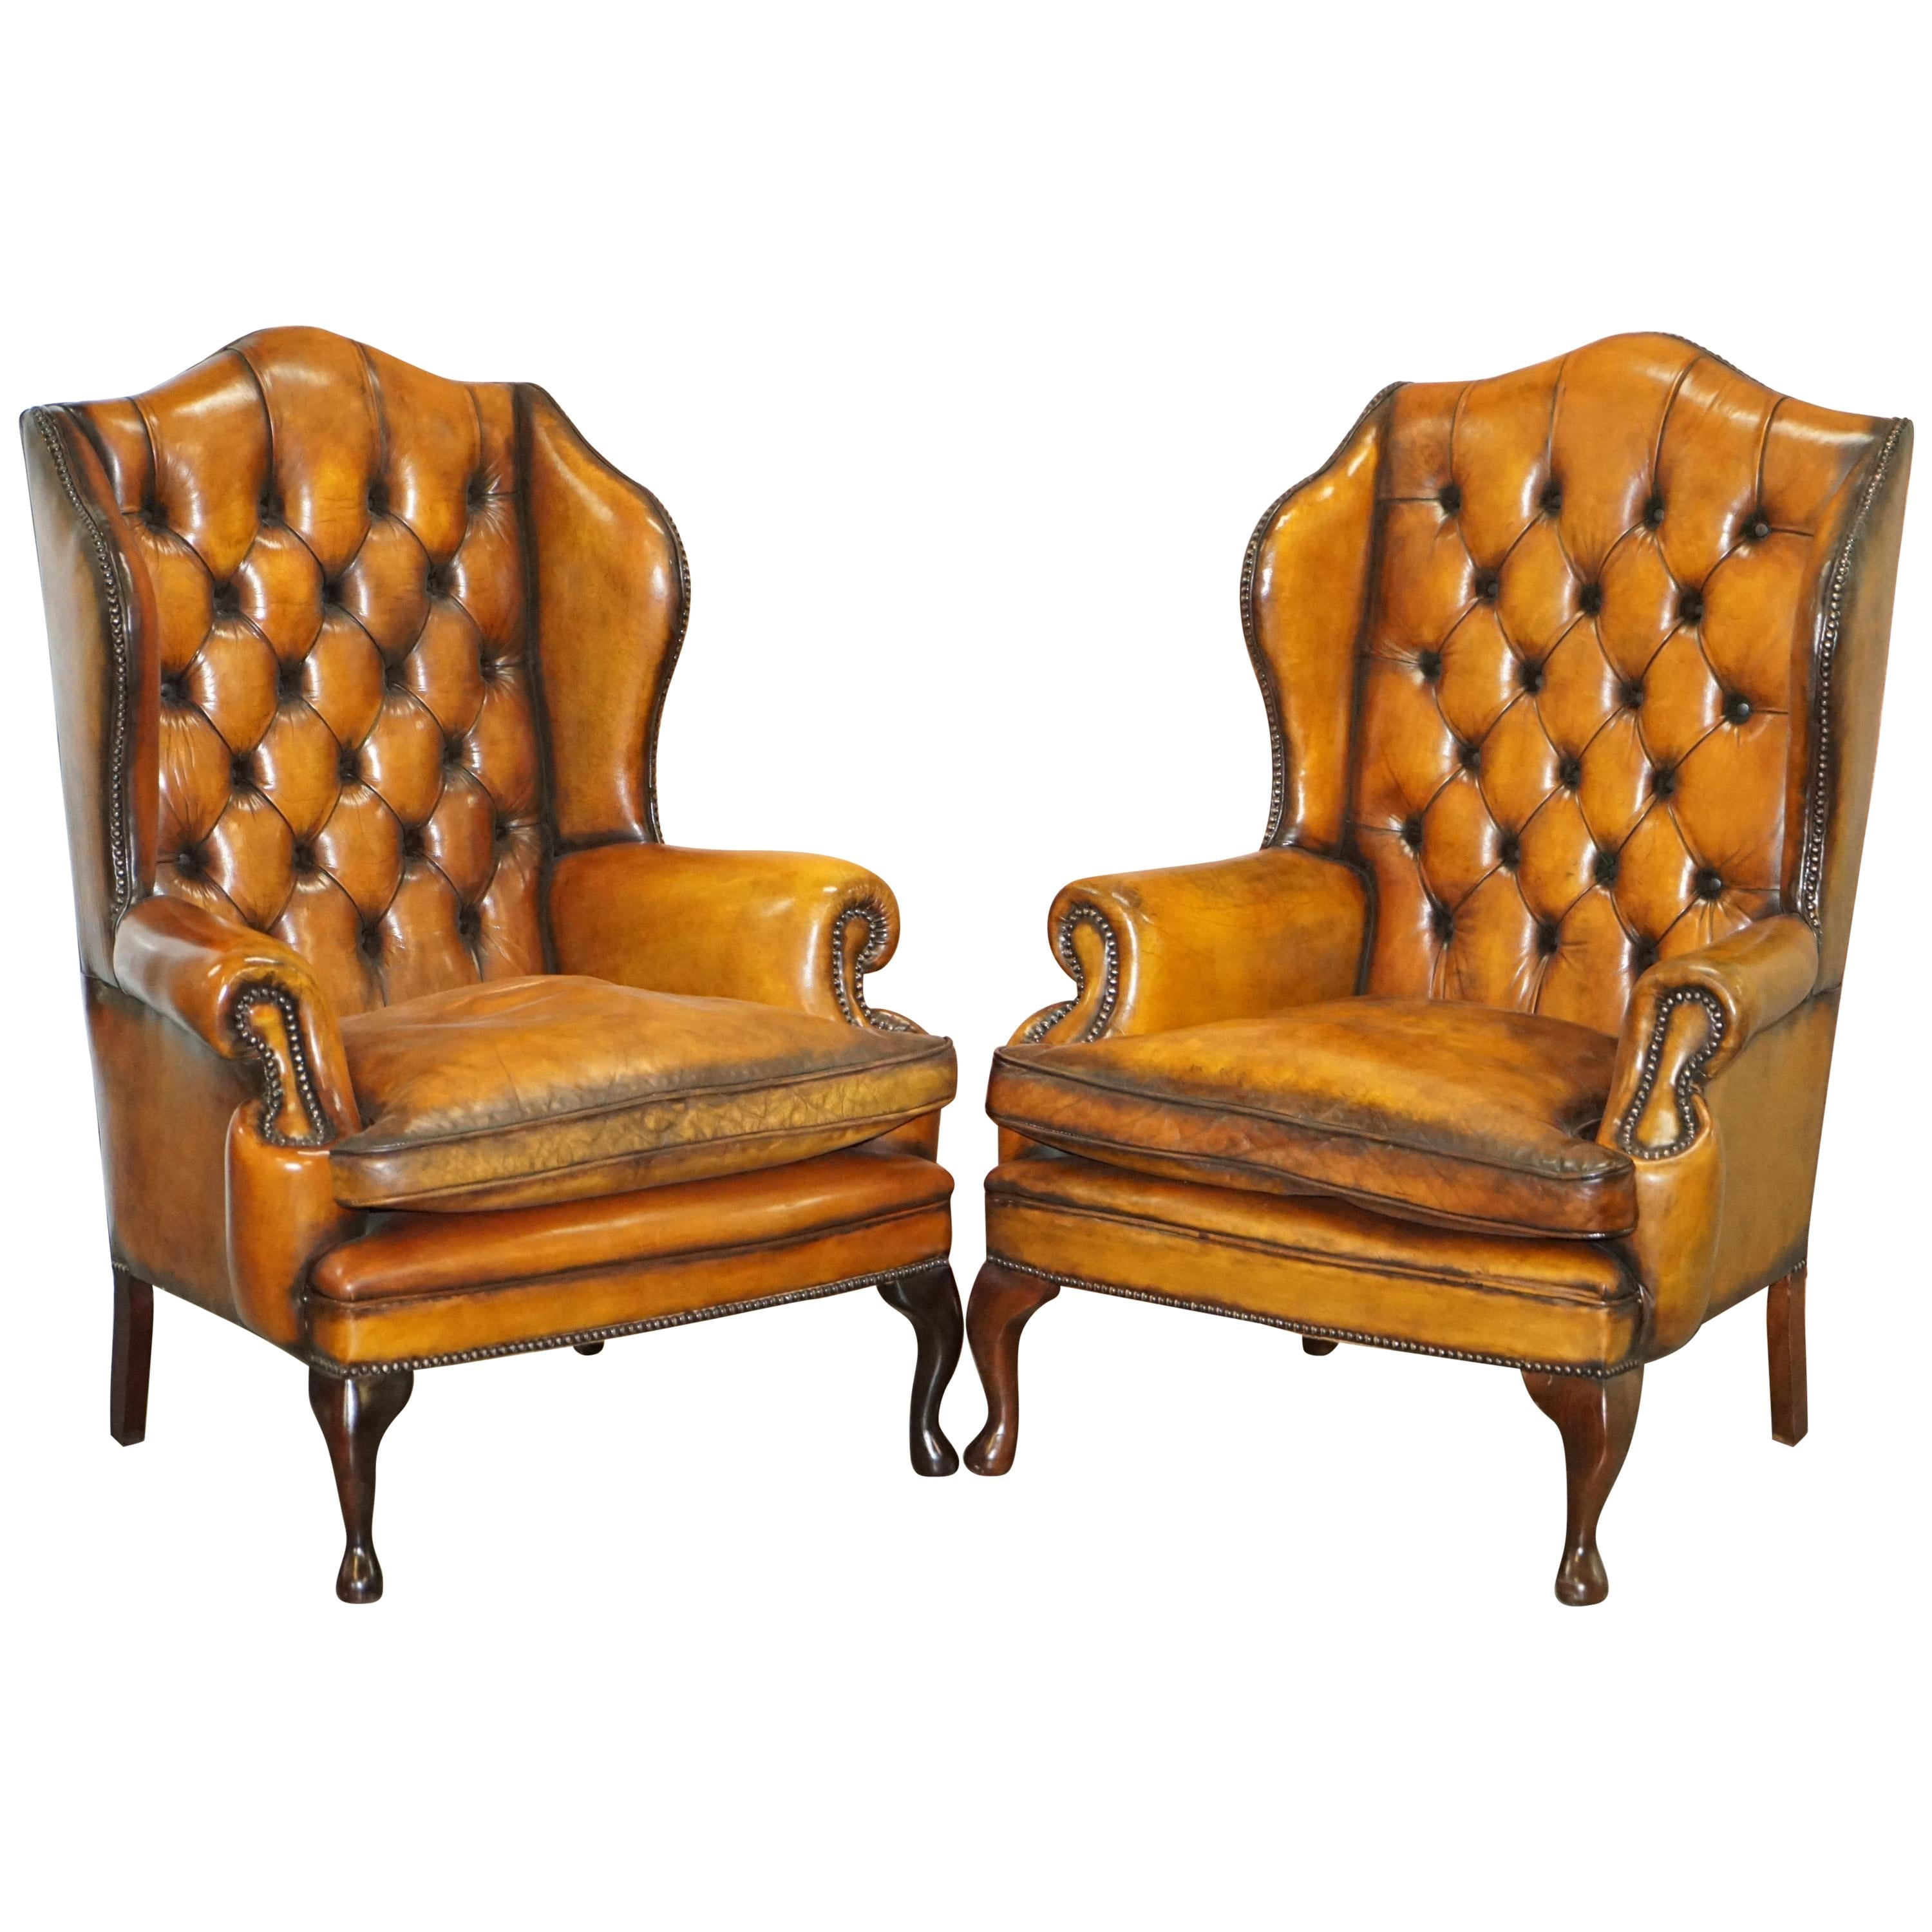 Pair of Chesterfield William Morris Wingback Armchairs Cigar Brown Leather